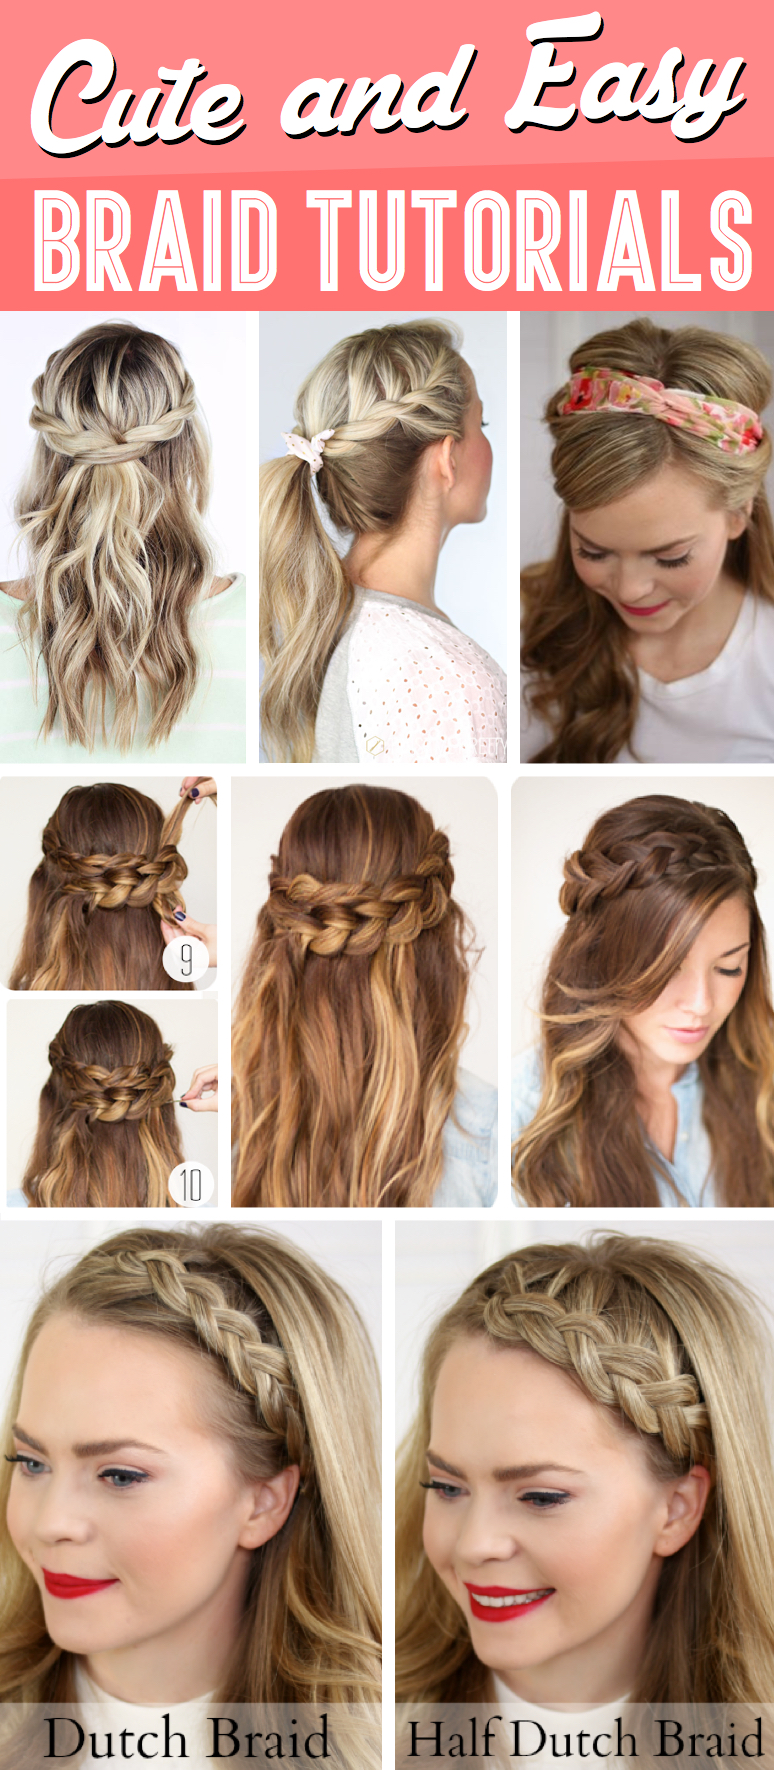 Awe Inspiring 30 Cute And Easy Braid Tutorials That Are Perfect For Any Hairstyle Inspiration Daily Dogsangcom